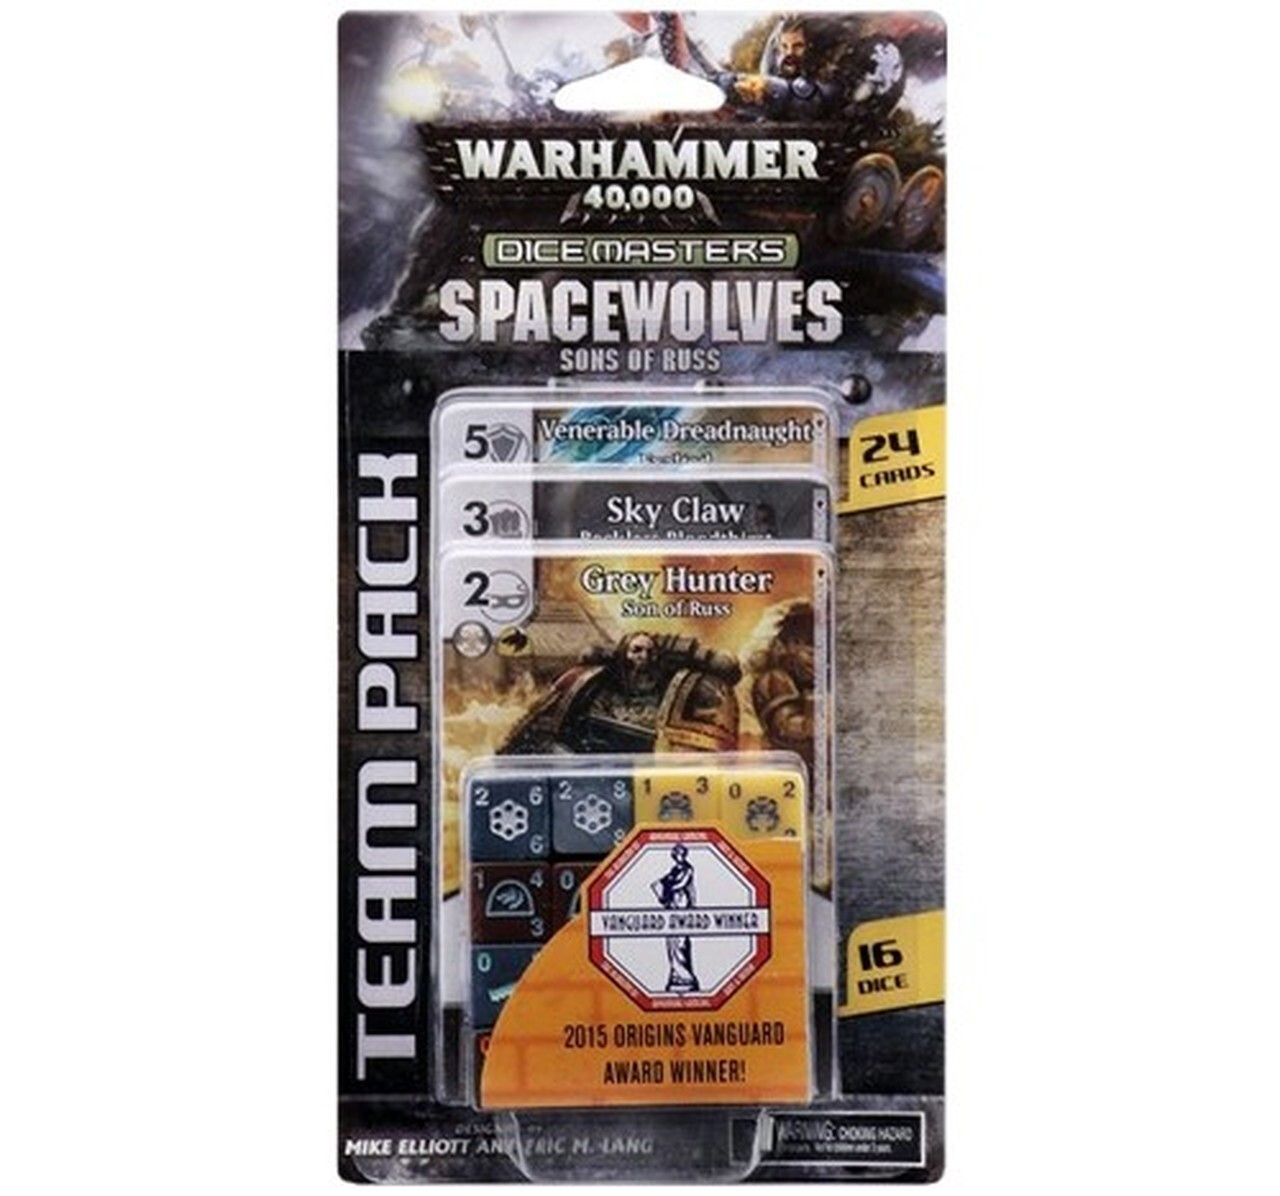 Dice Masters: Spacewolves Sons Of Russ Team Pack